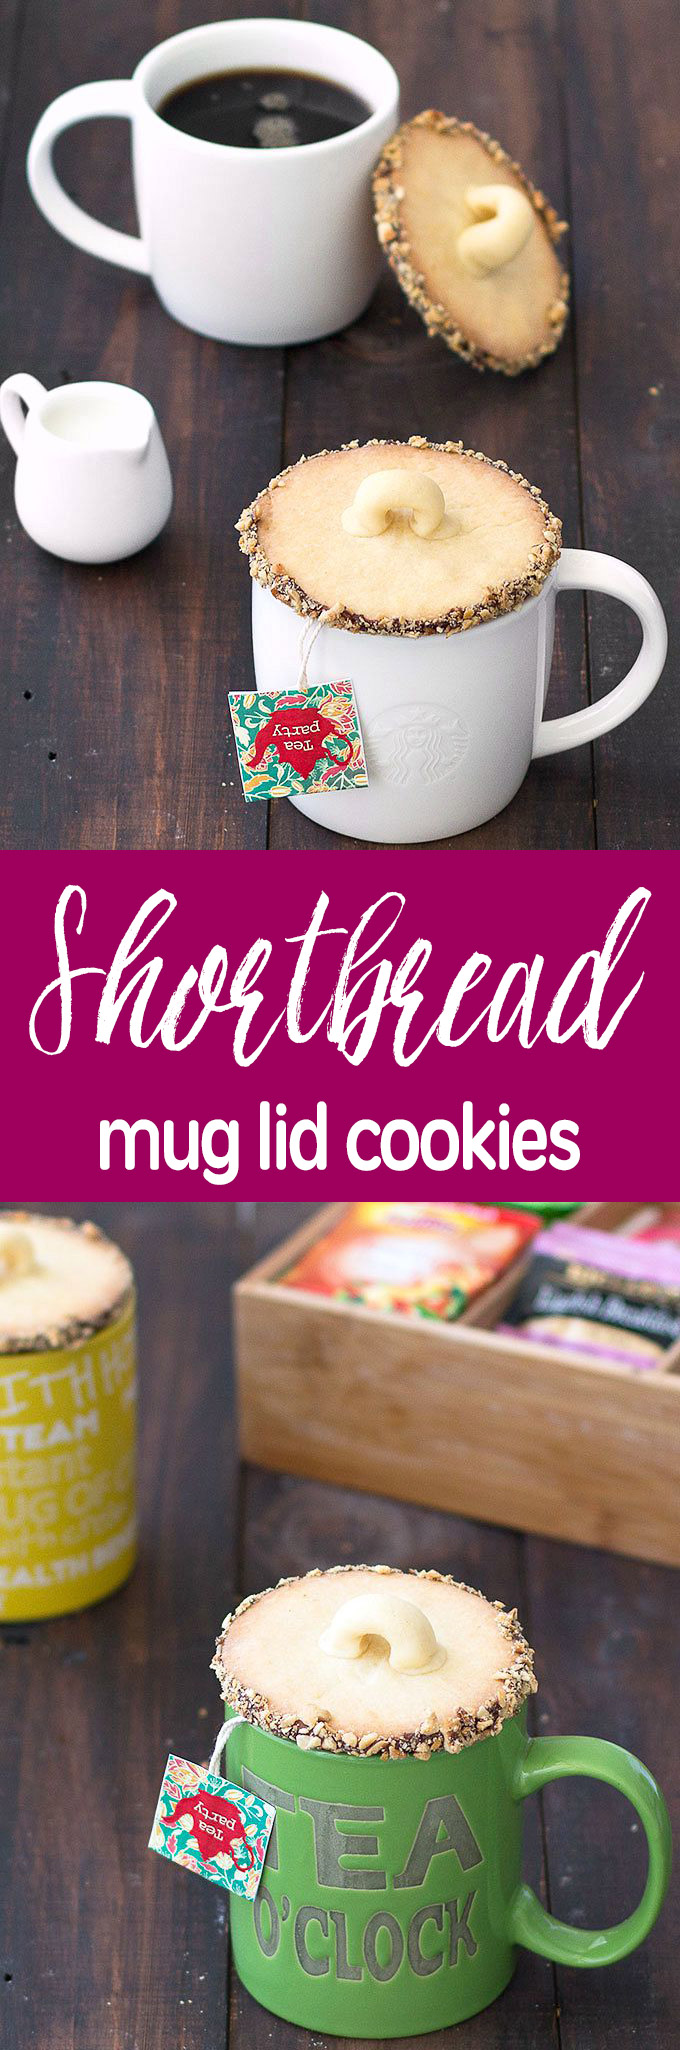 Shortbread mug lid cookies - very easy to make, wrap them up with a pretty mug and give them to friends and family as gifts!